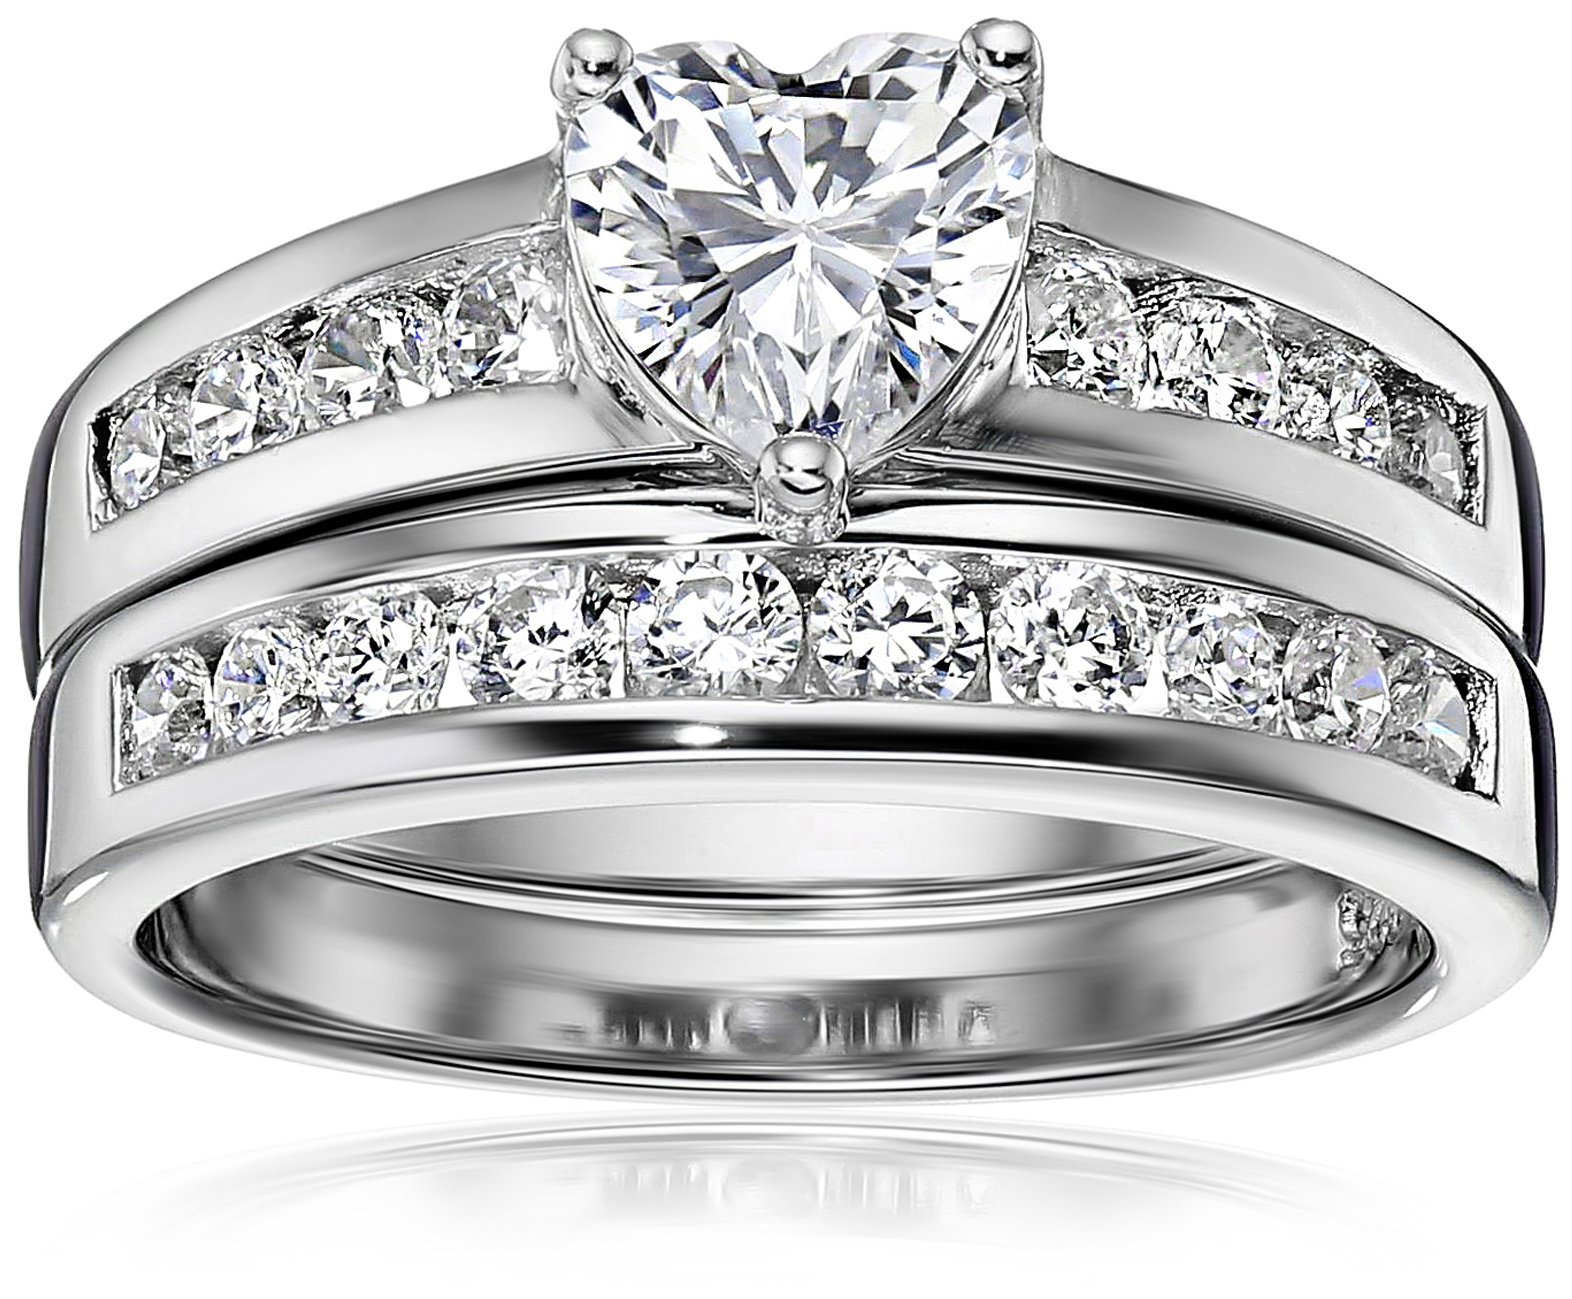 Platinum Plated Sterling Silver Cubic Zirconia Heart-Shaped Ring Set, Size 7